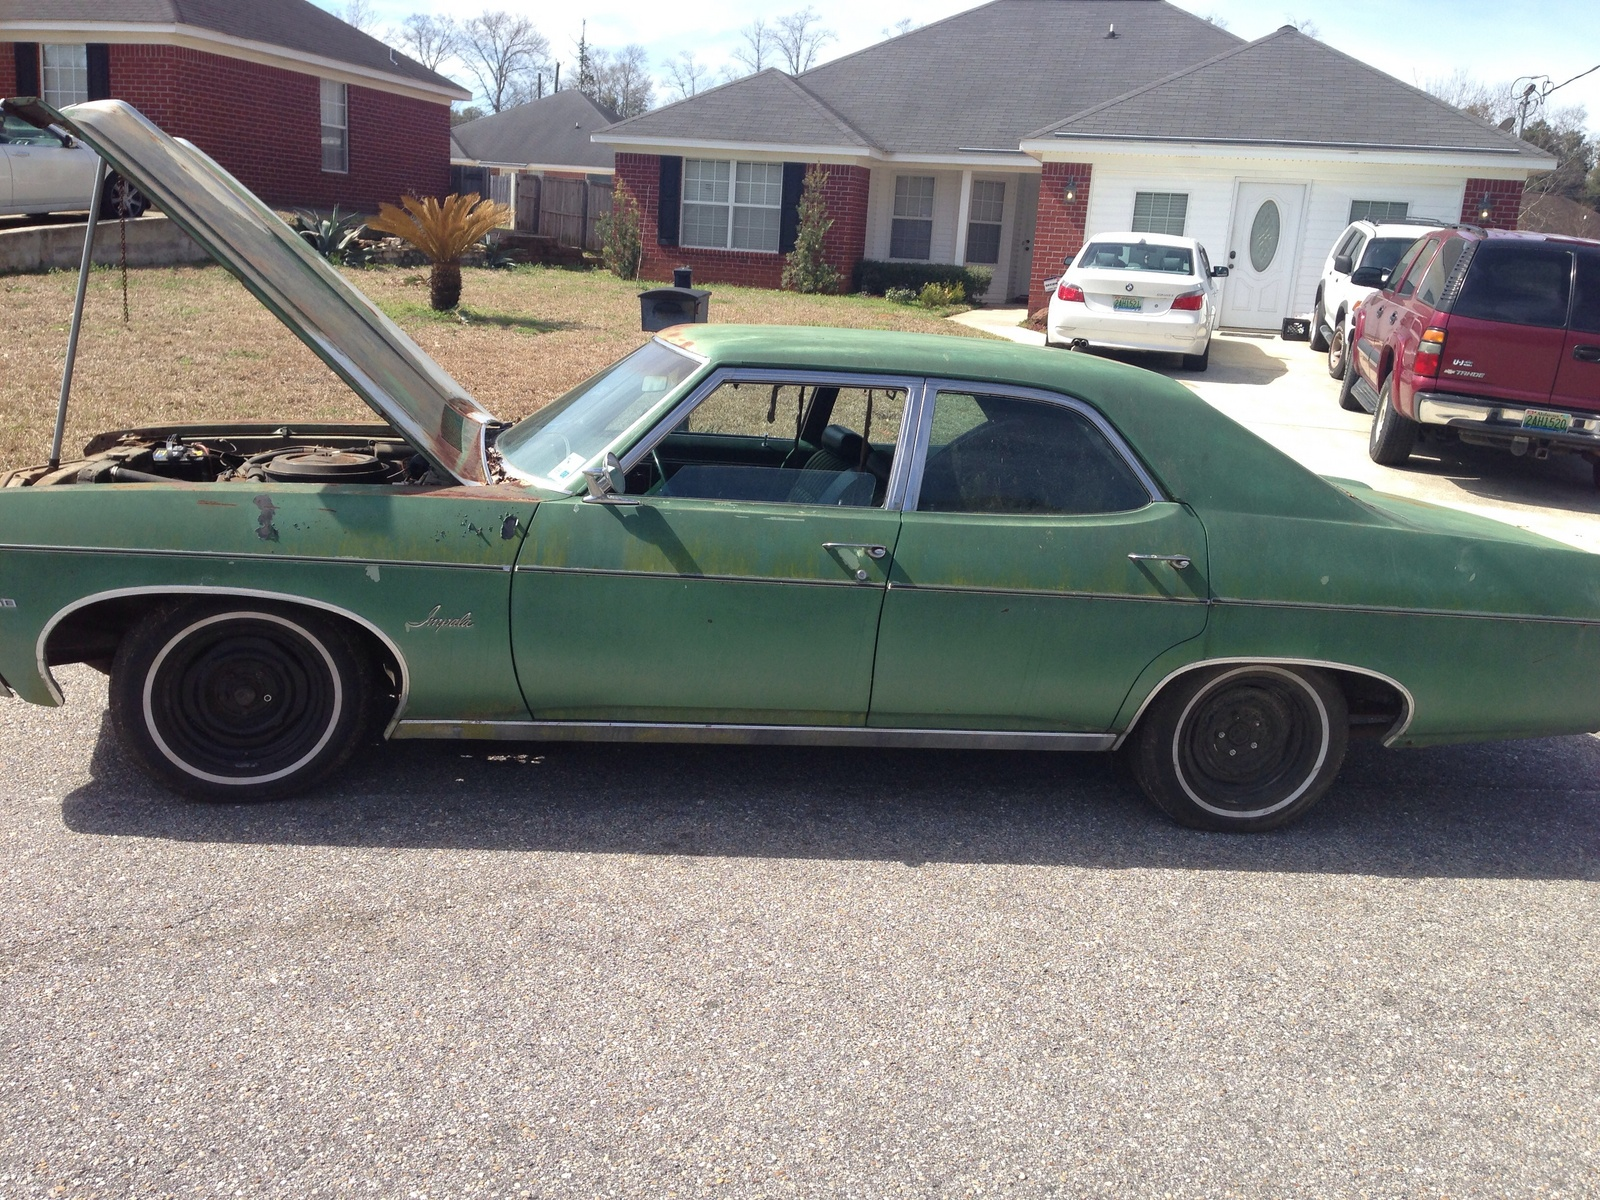 Picture of 1970 Chevrolet Impala